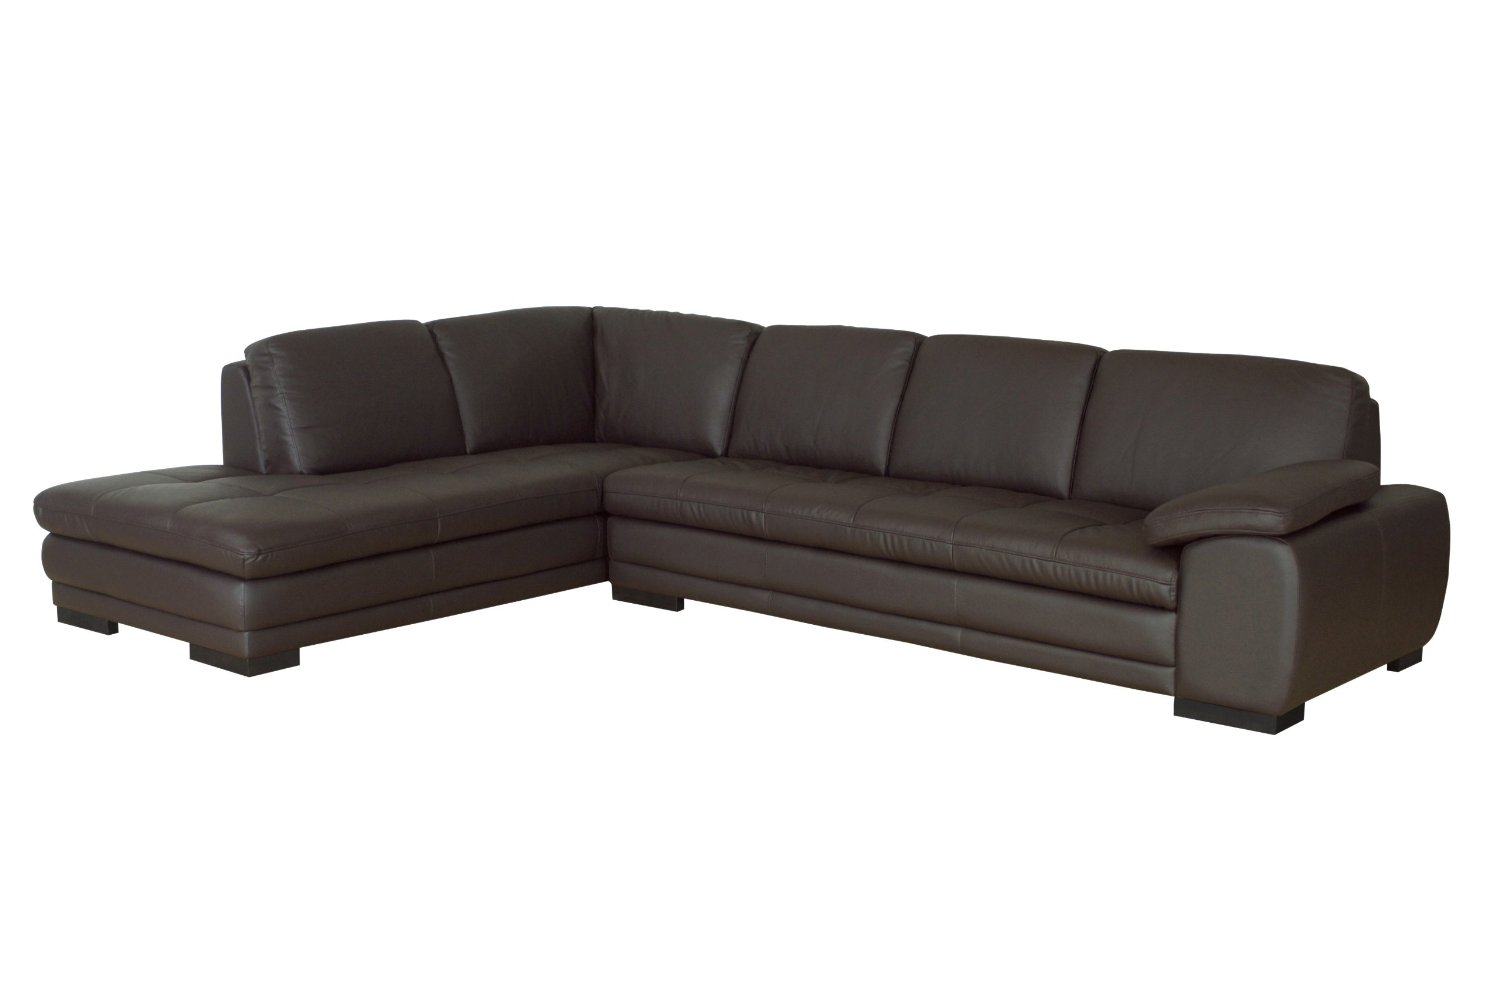 Leather Sectional Furniture Guide  LeatherSofaorg